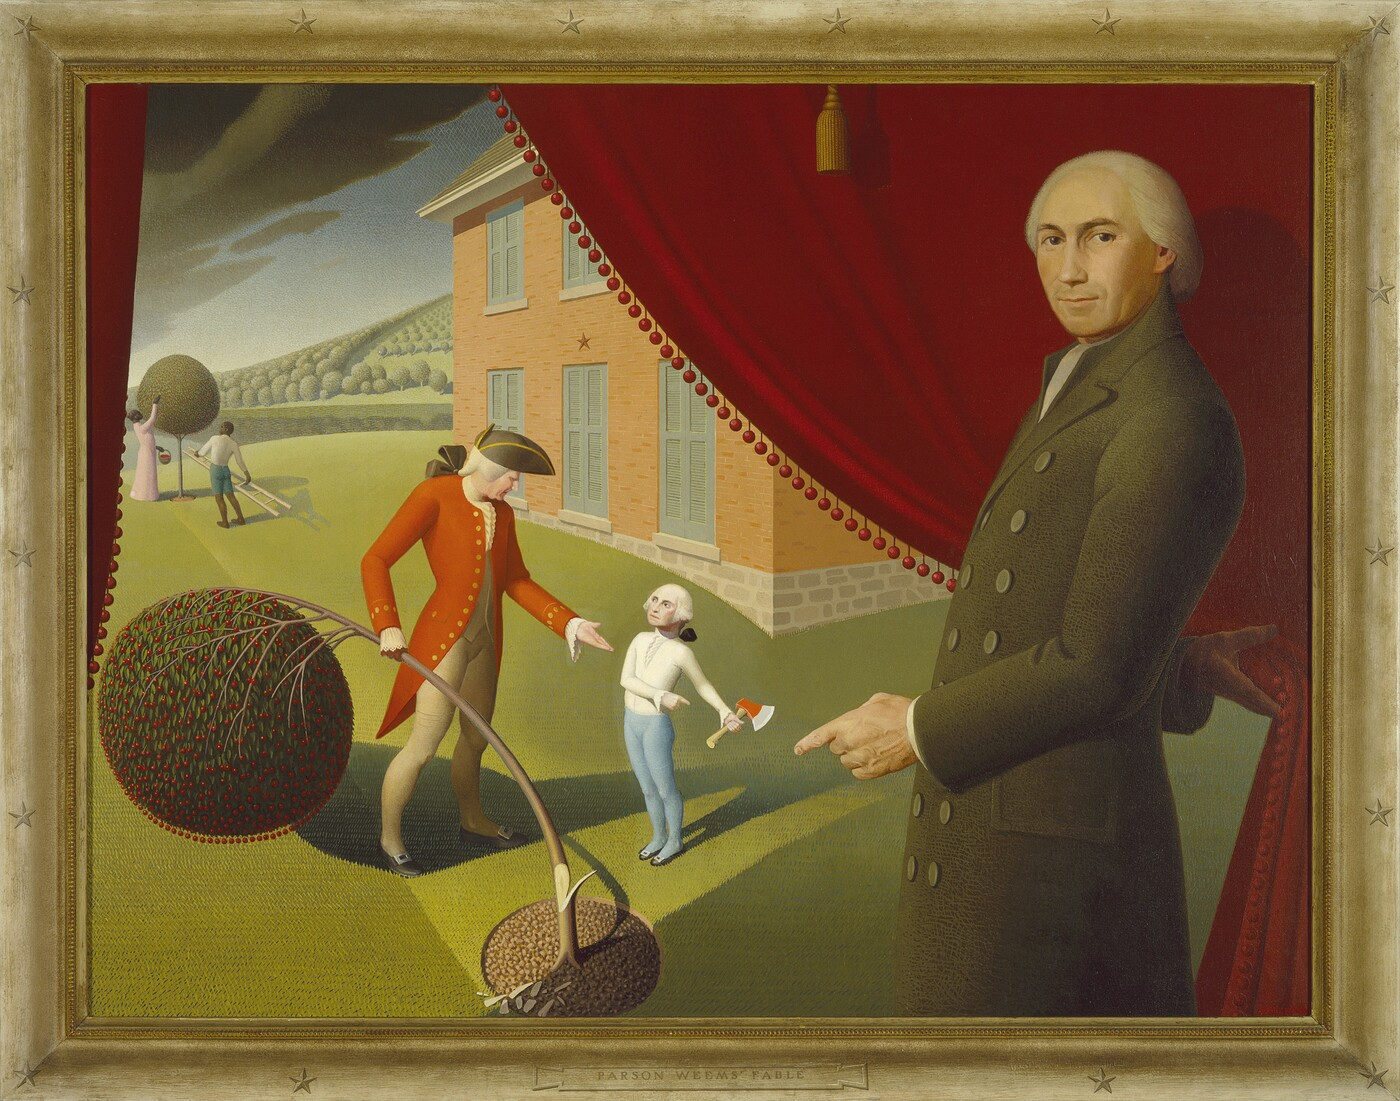 Grant Wood (1891–1942), Parson Weems' Fable, 1939, Oil on canvas